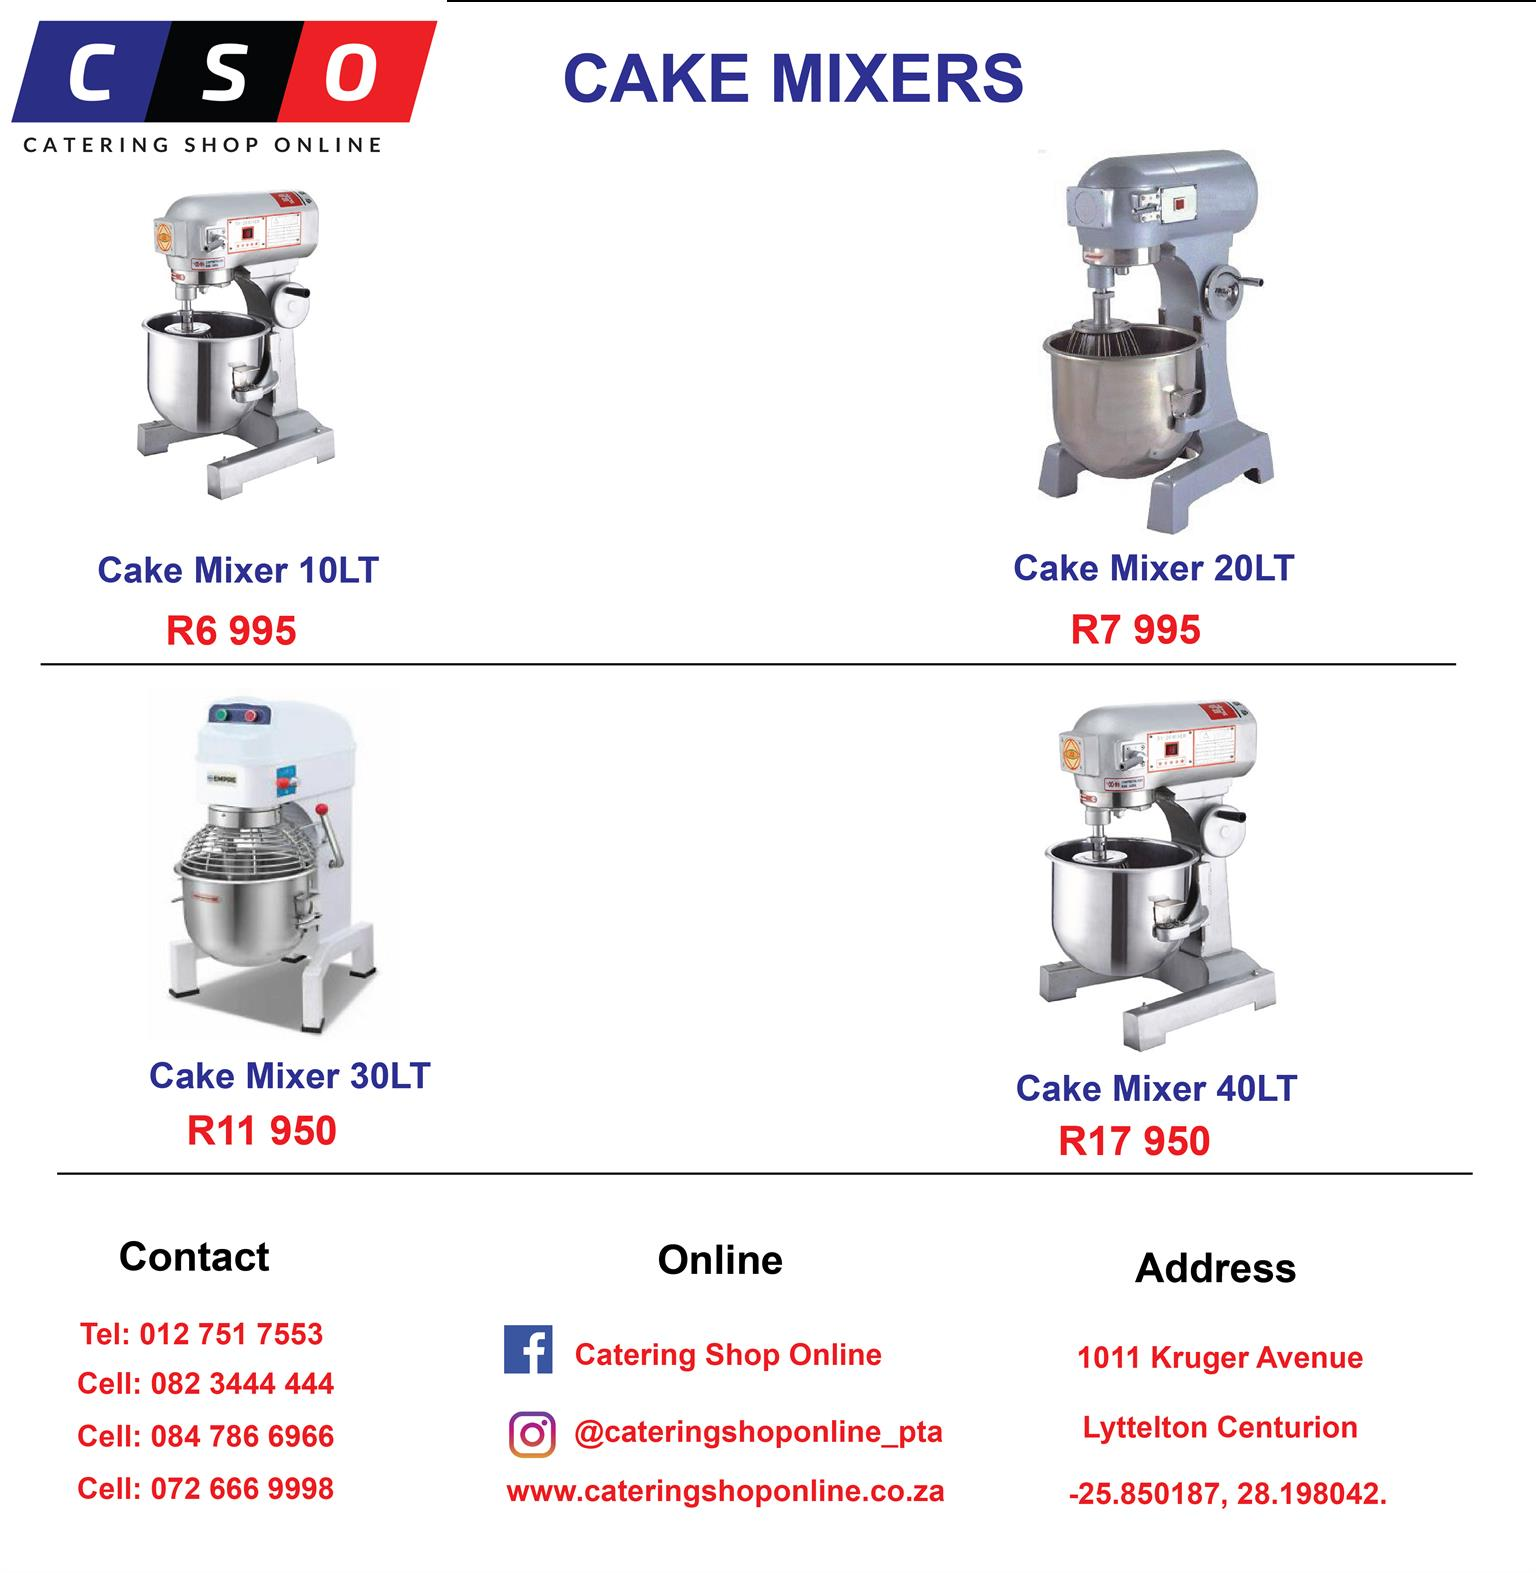 CAKE MIXERS AVAILABLE FOR SALE